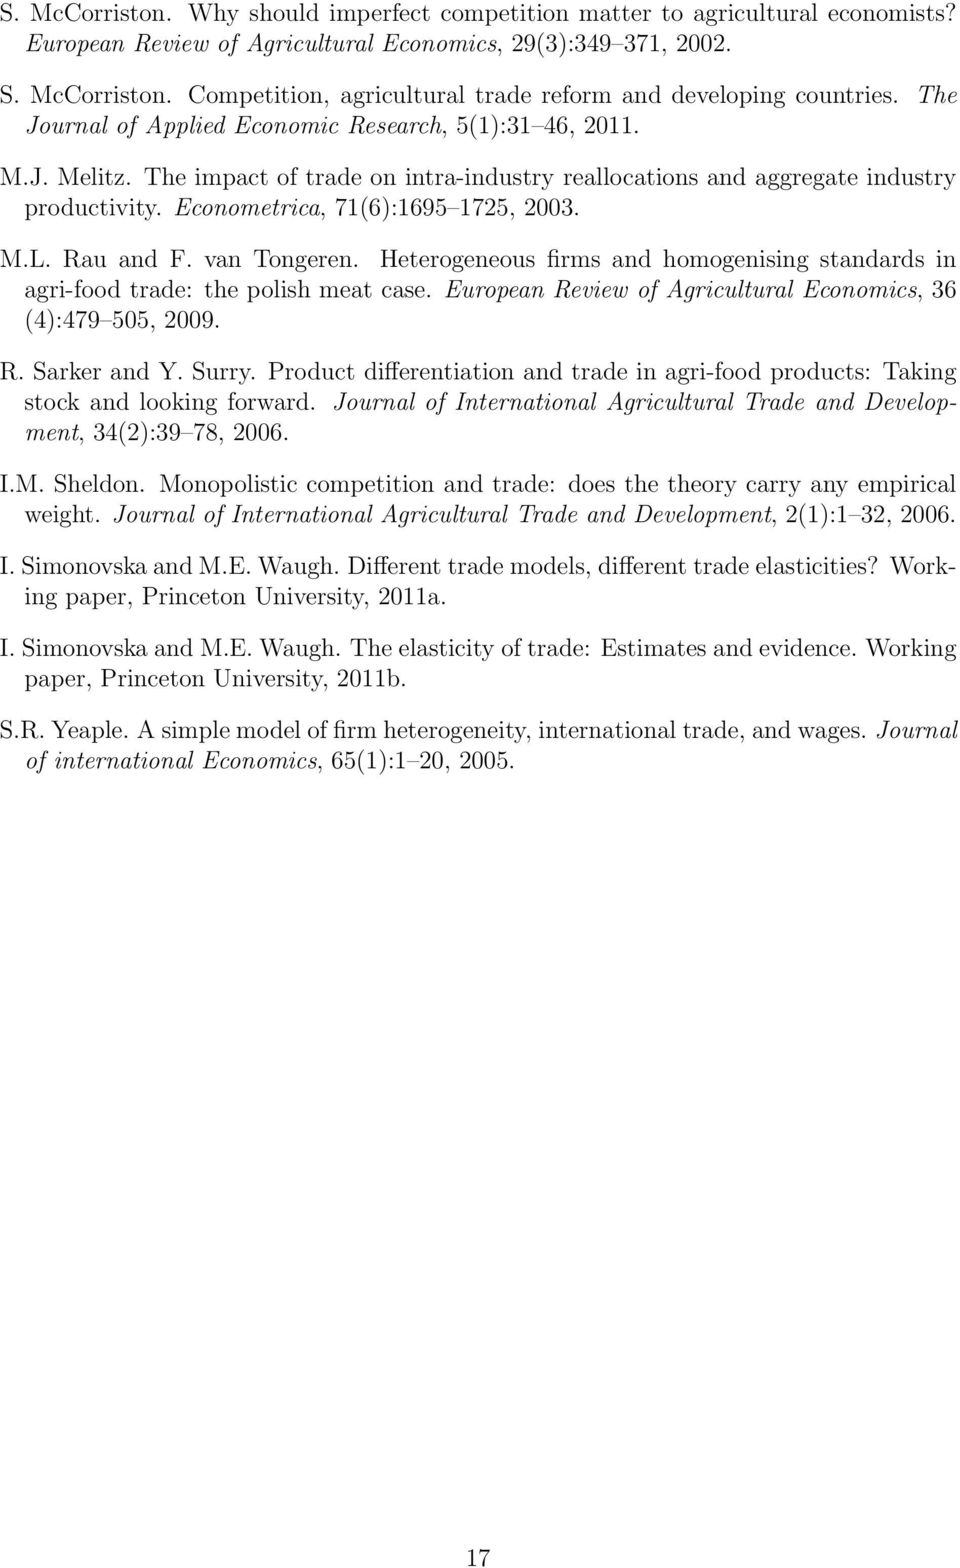 M.L. Rau and F. van Tongeren. Heterogeneous firms and homogenising standards in agri-food trade: the polish meat case. European Review of Agricultural Economics, 36 (4):479 505, 2009. R. Sarker and Y.